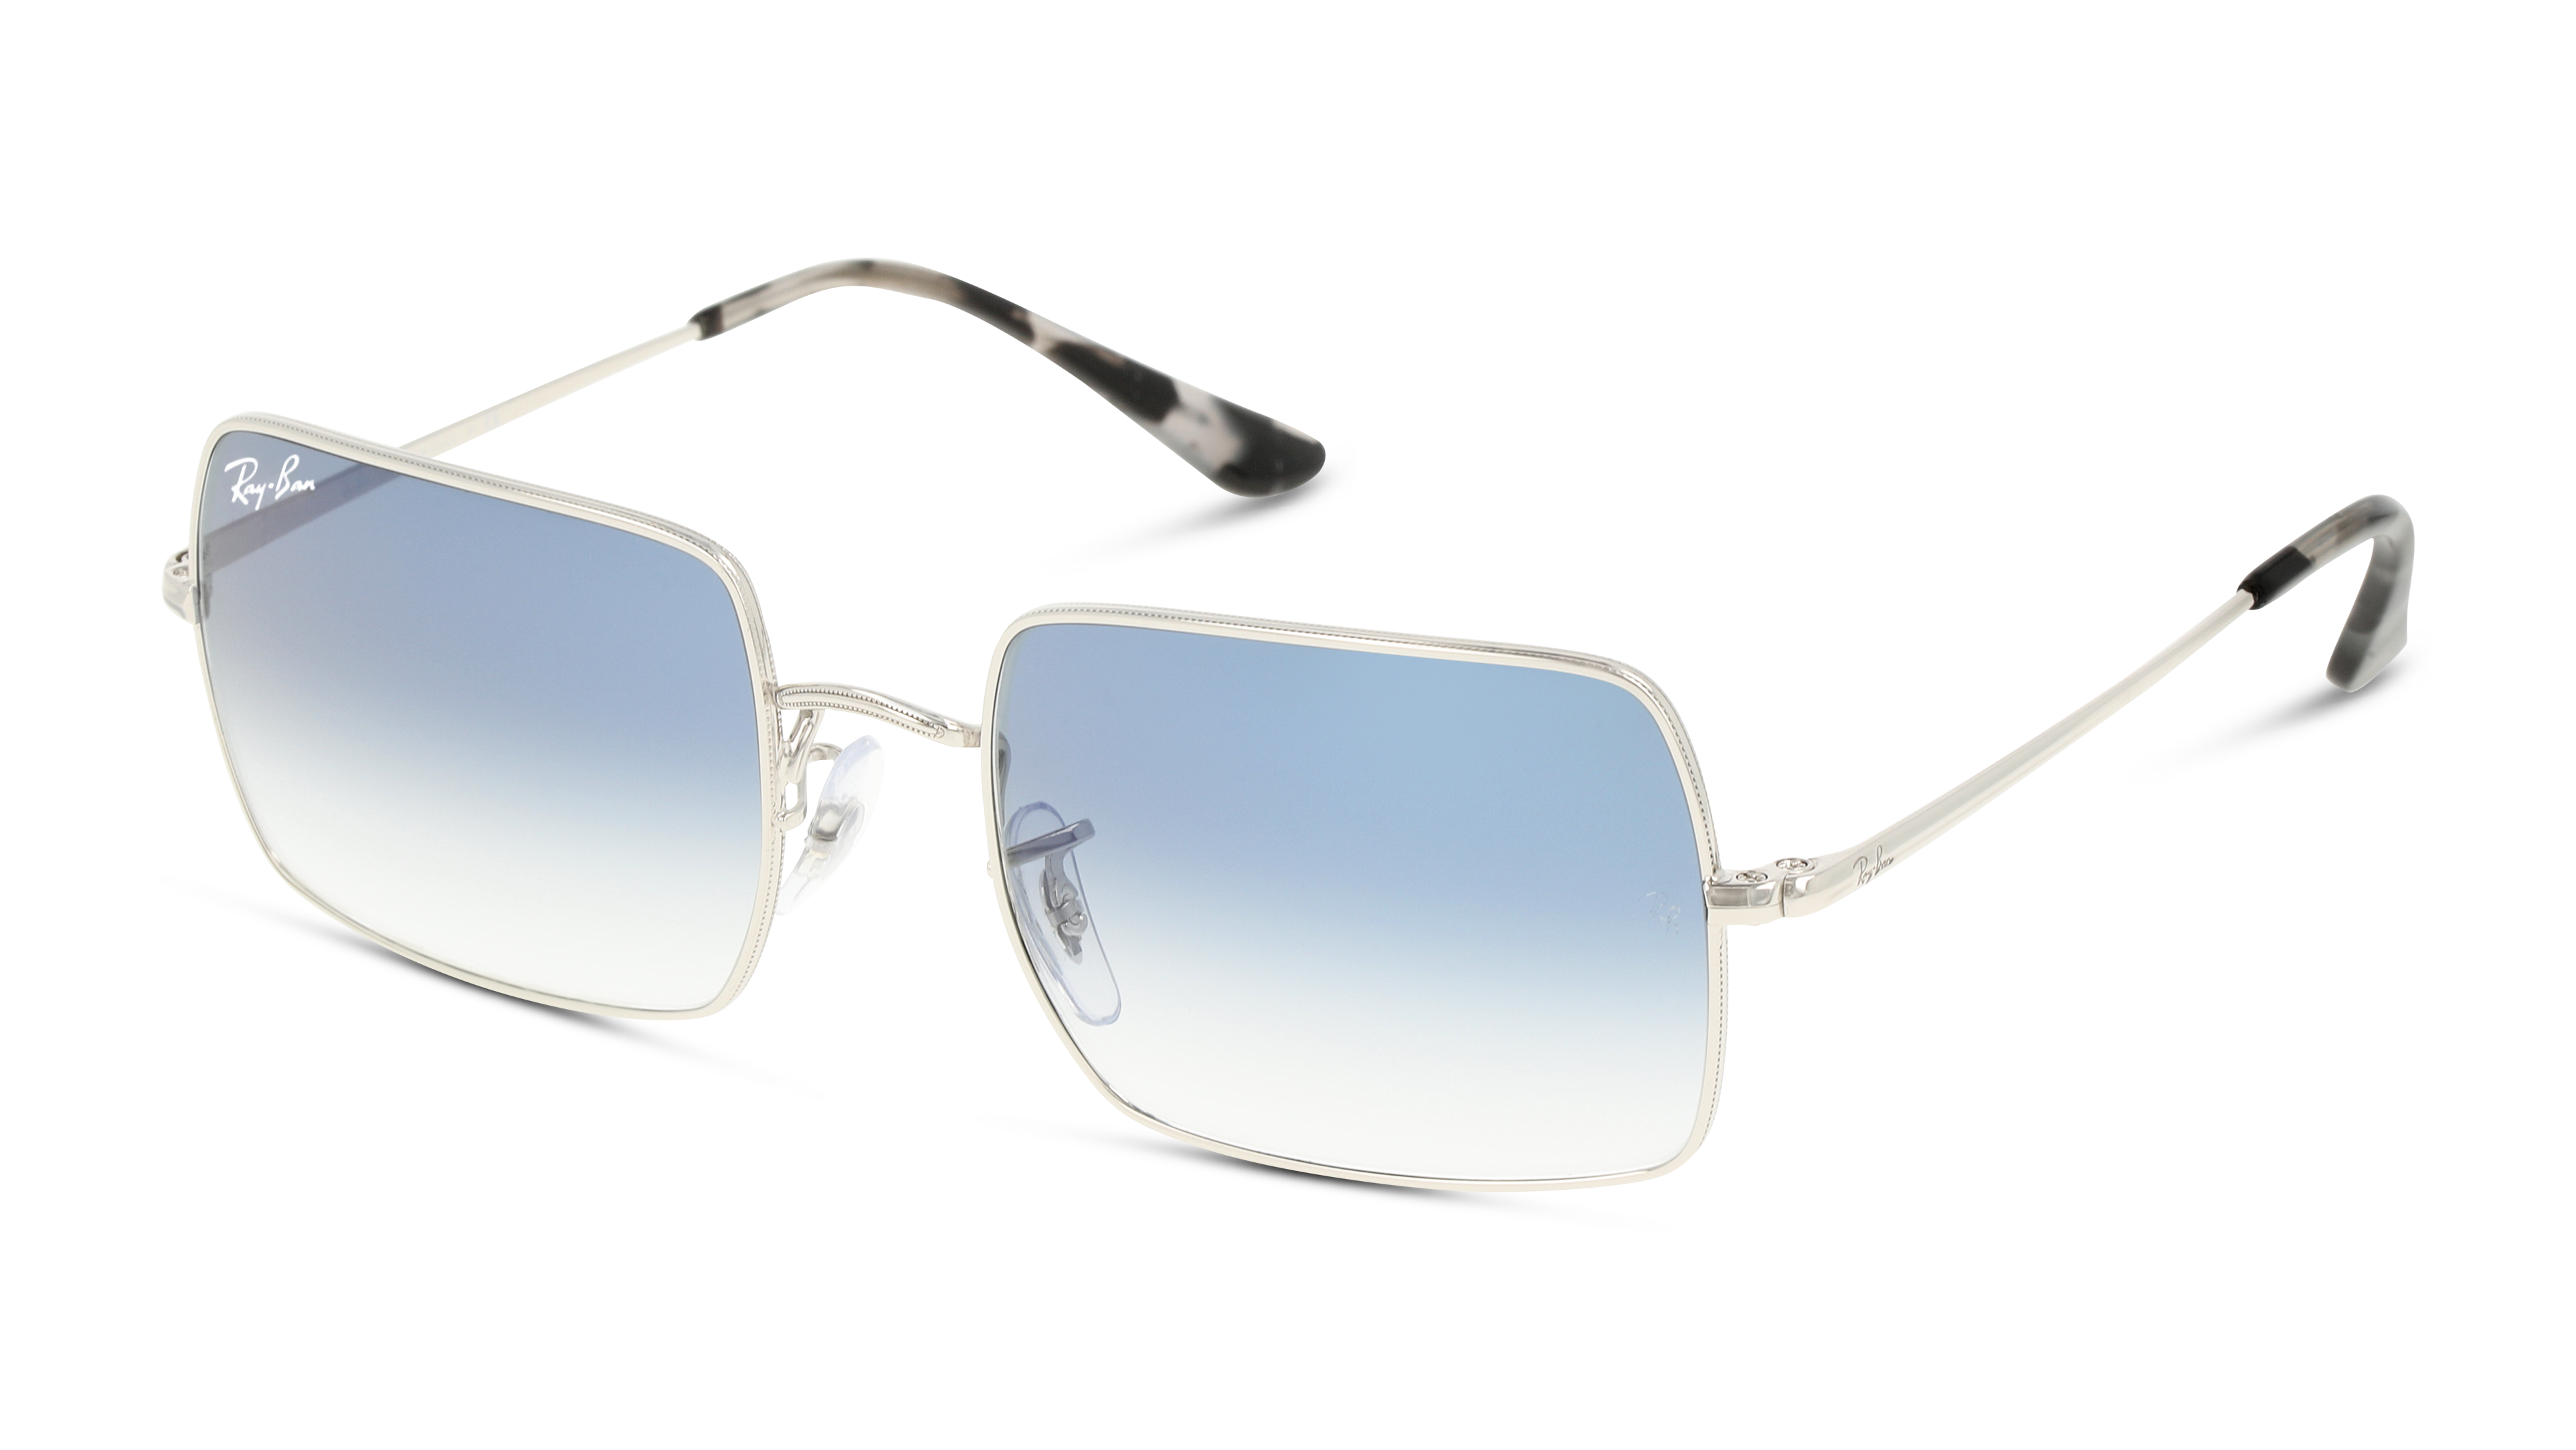 Angle_Left01 Ray-Ban Ray-Ban 0RB1969 91493F 54/19 Zilver/Blauw